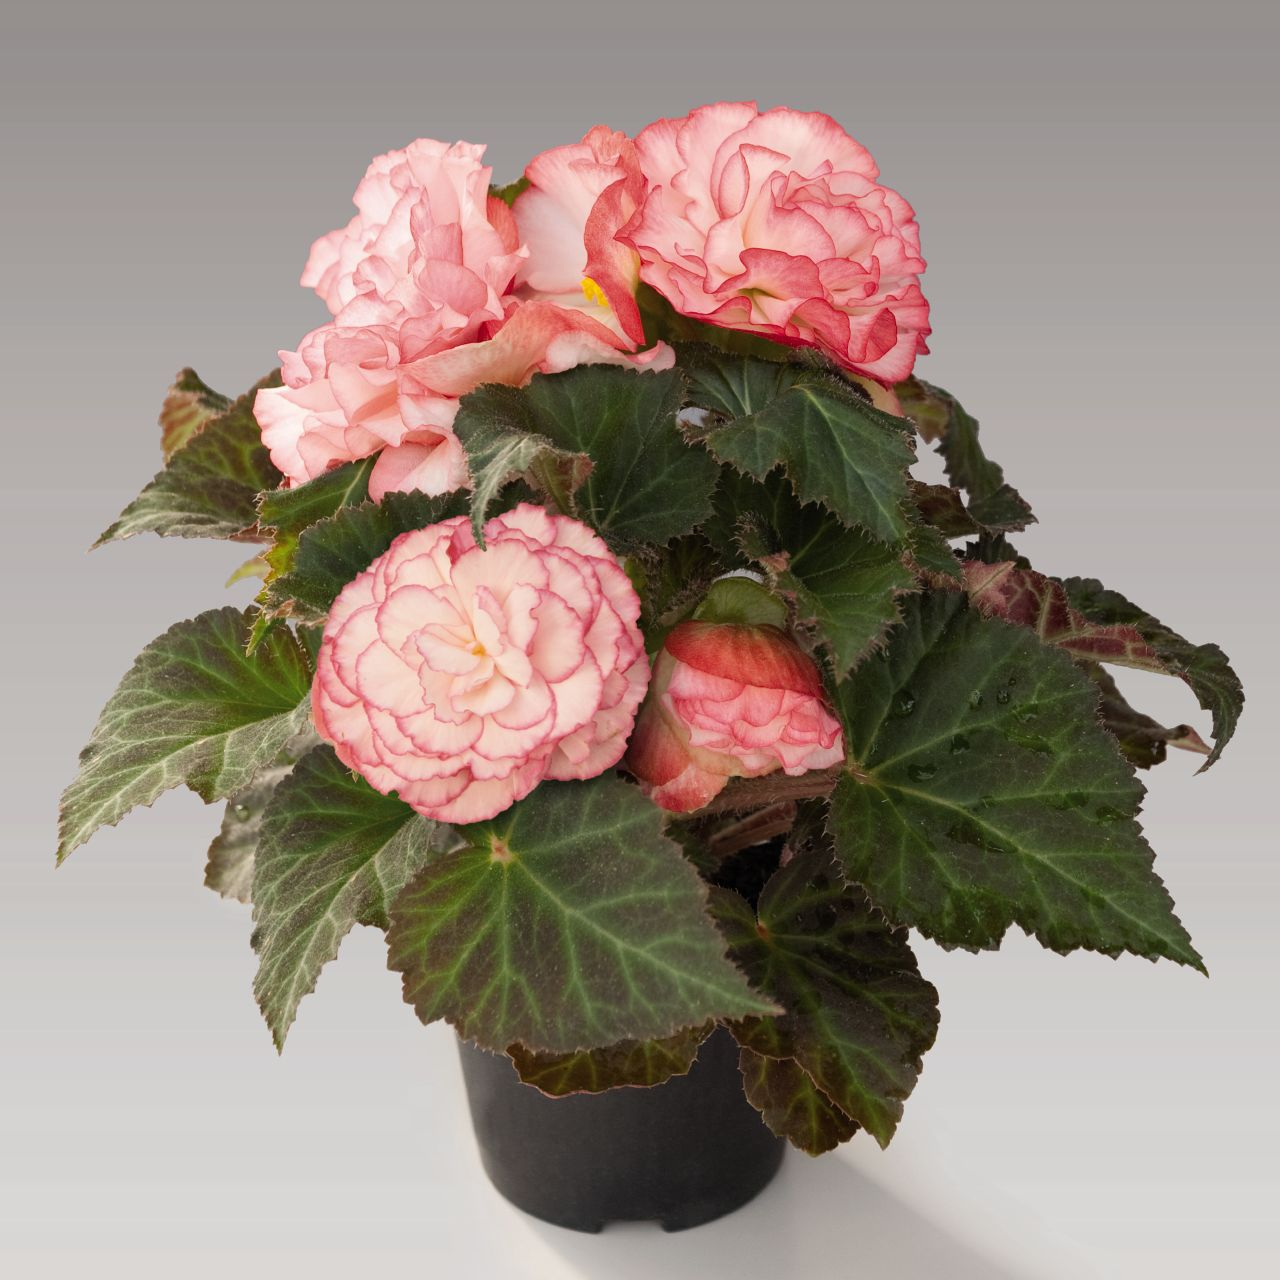 begonia tuberhybrida nonstop rose petticoat improved